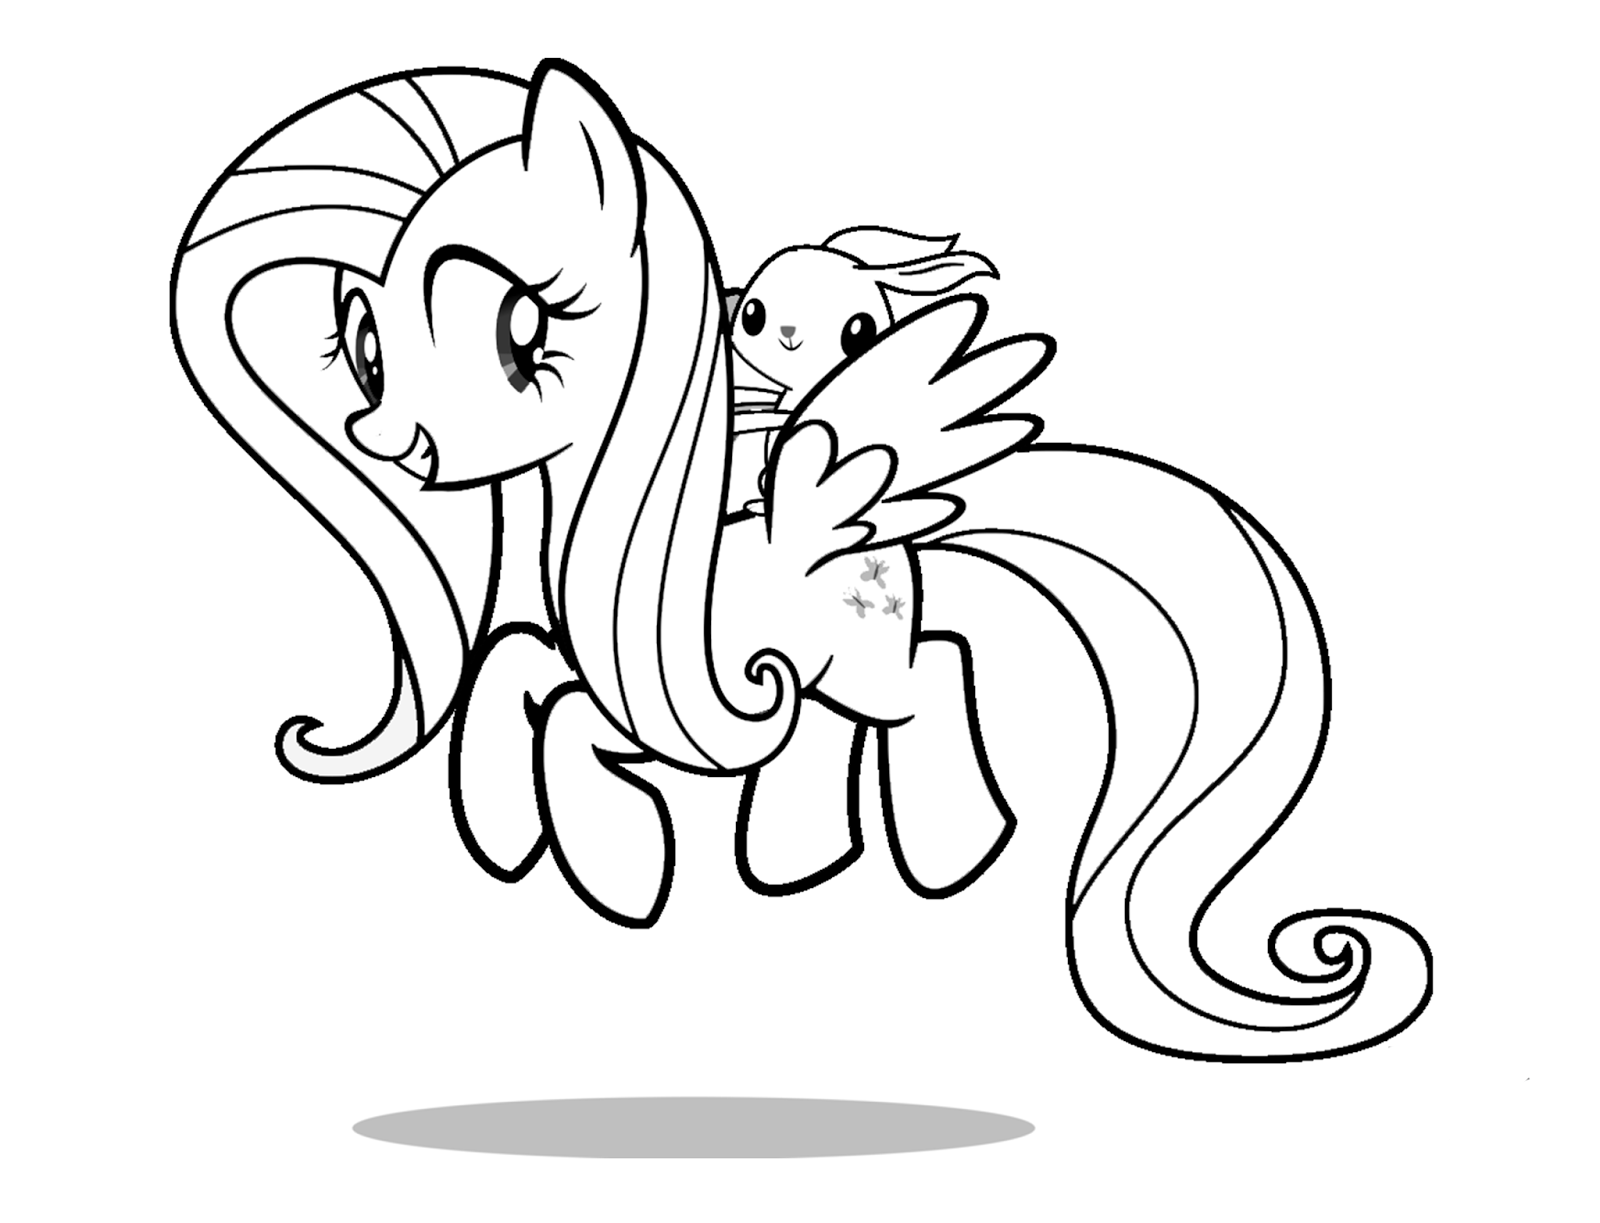 fluttershy coloring fluttershy coloring pages best coloring pages for kids fluttershy coloring